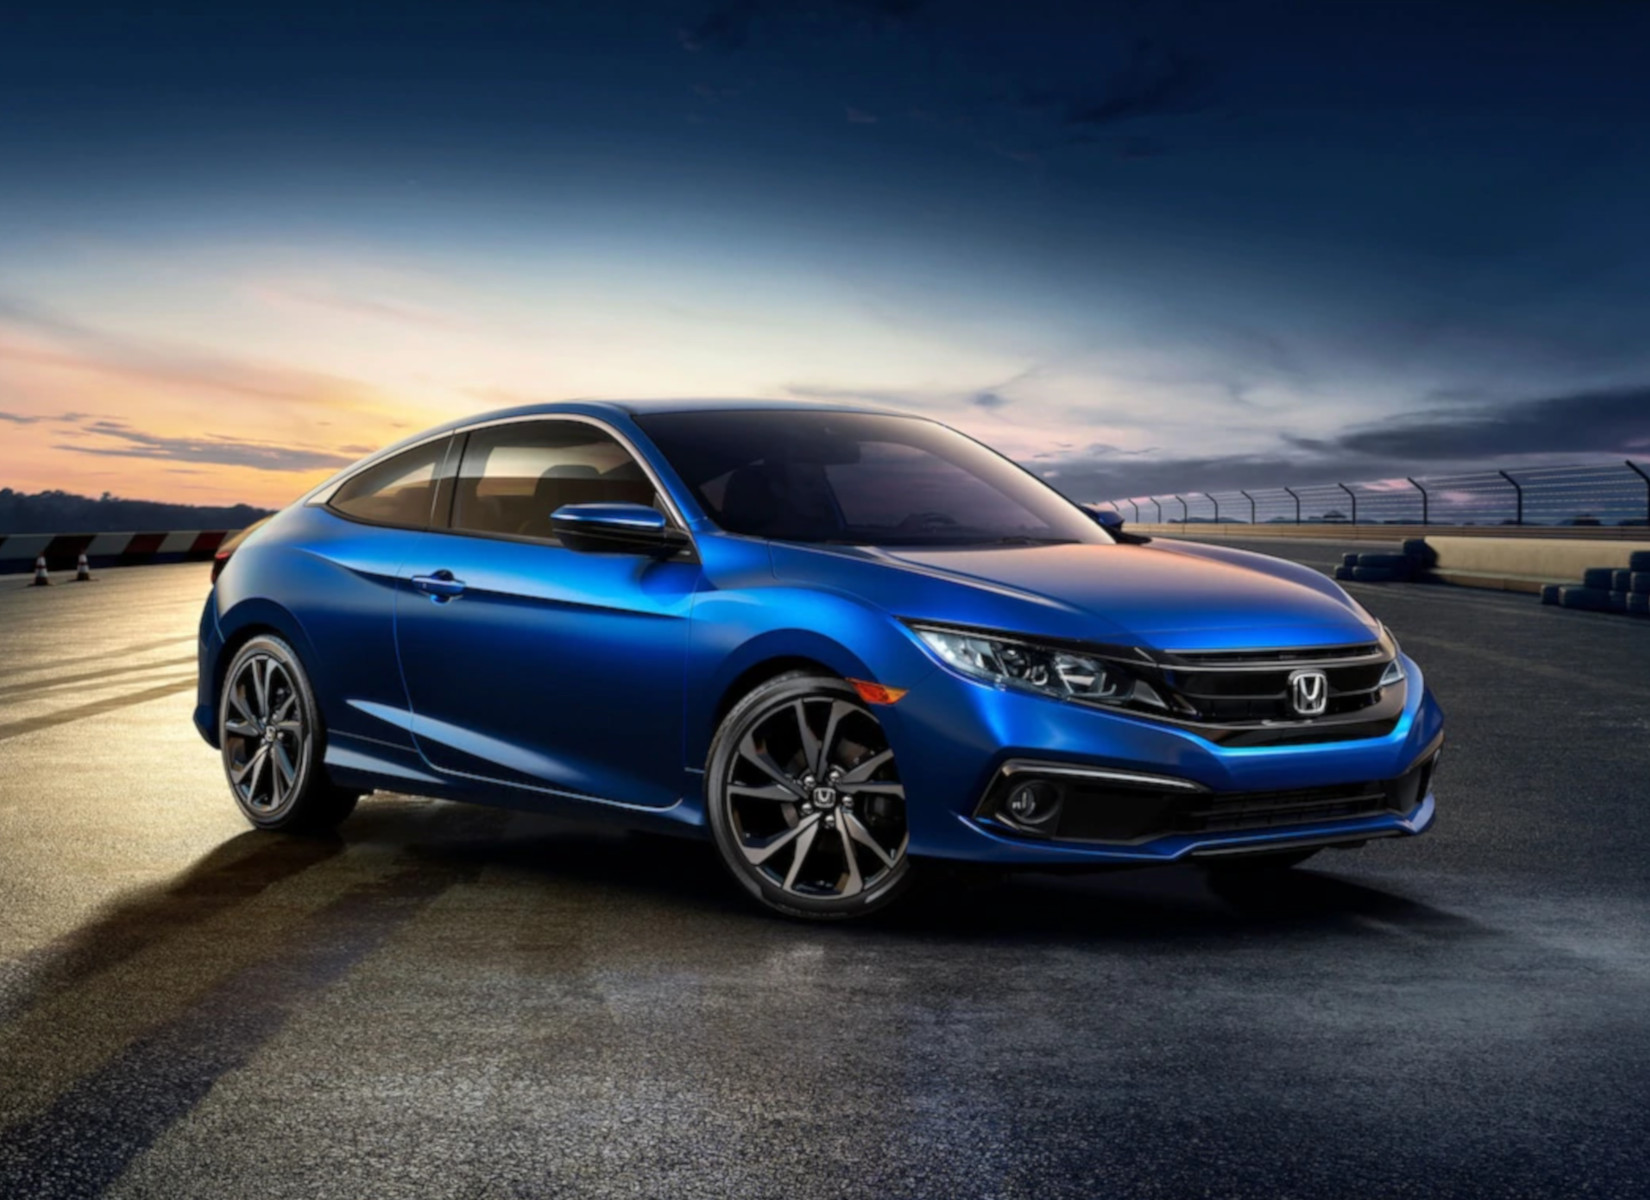 The 2019 Honda Civic, for sale at Headquarter Honda in Clermont, FL